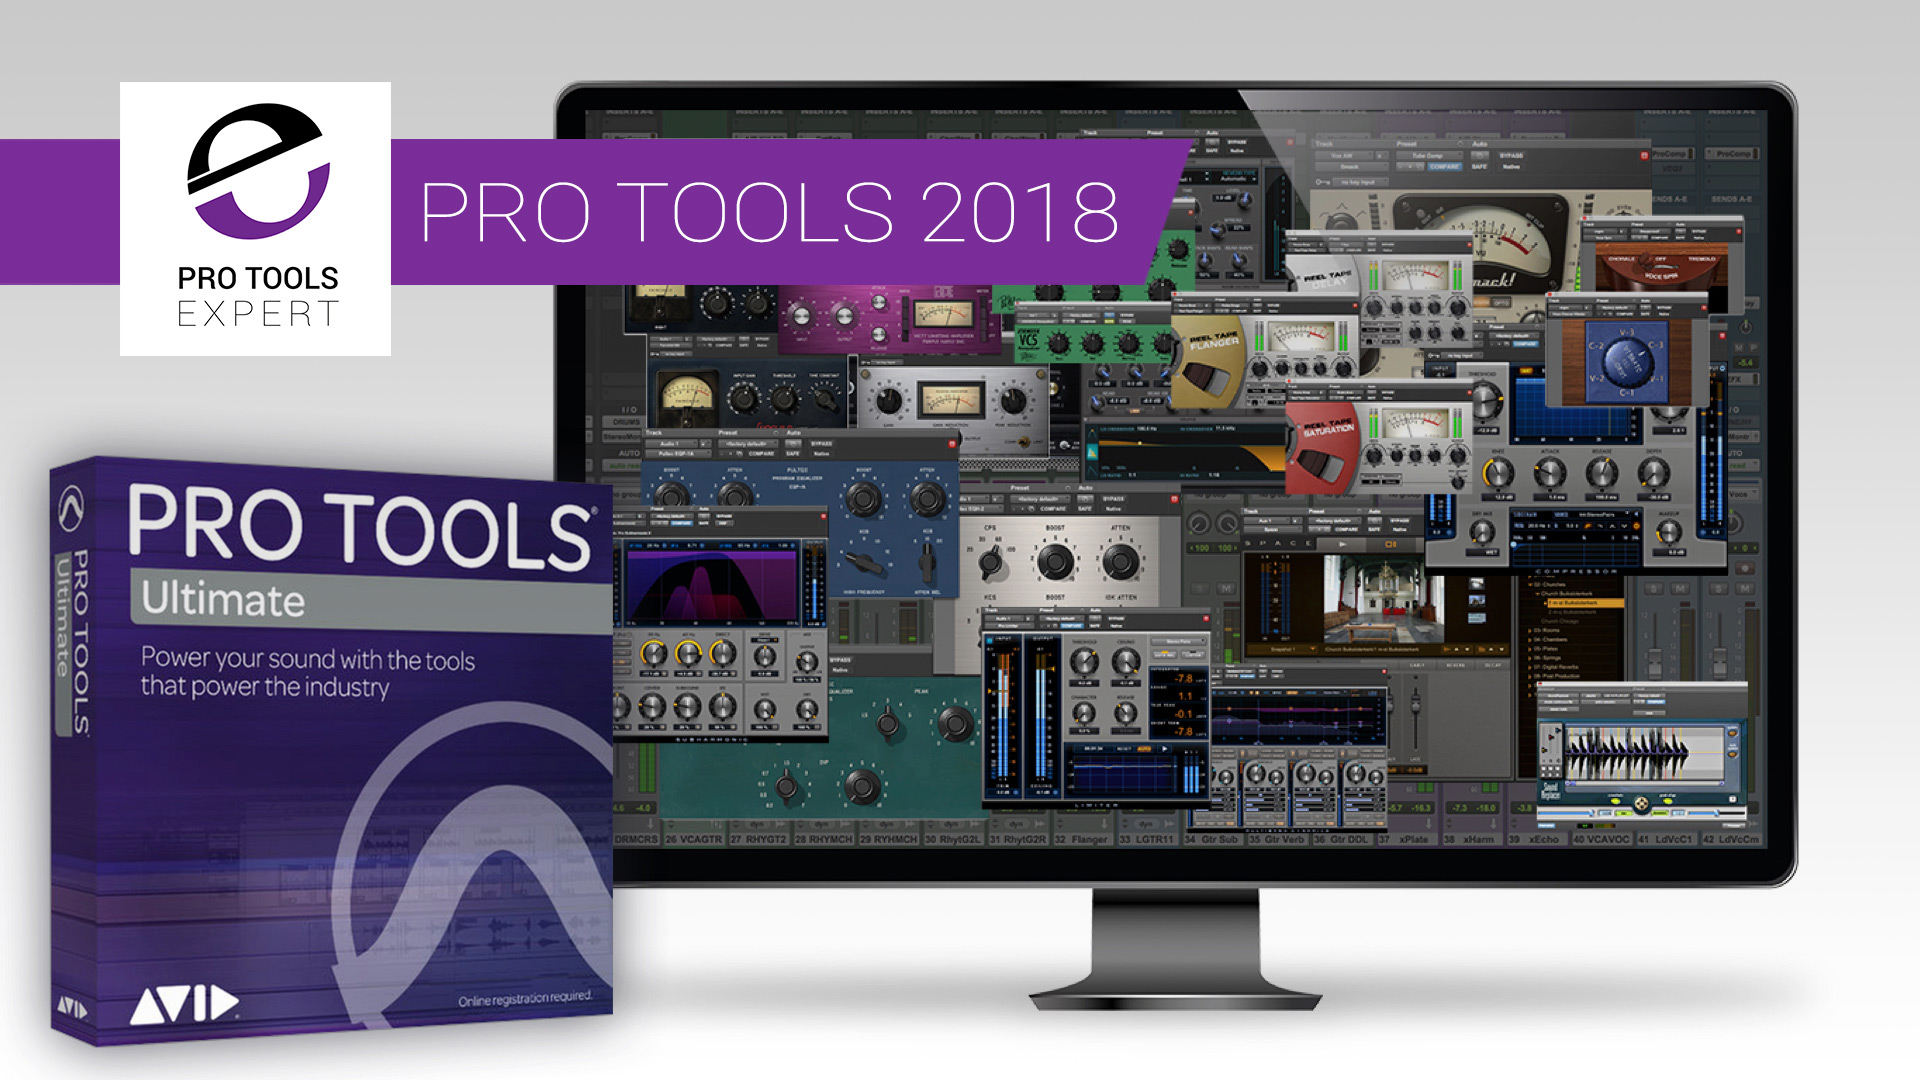 Everything You Need To Know About Pro Tools 2018 - Learn